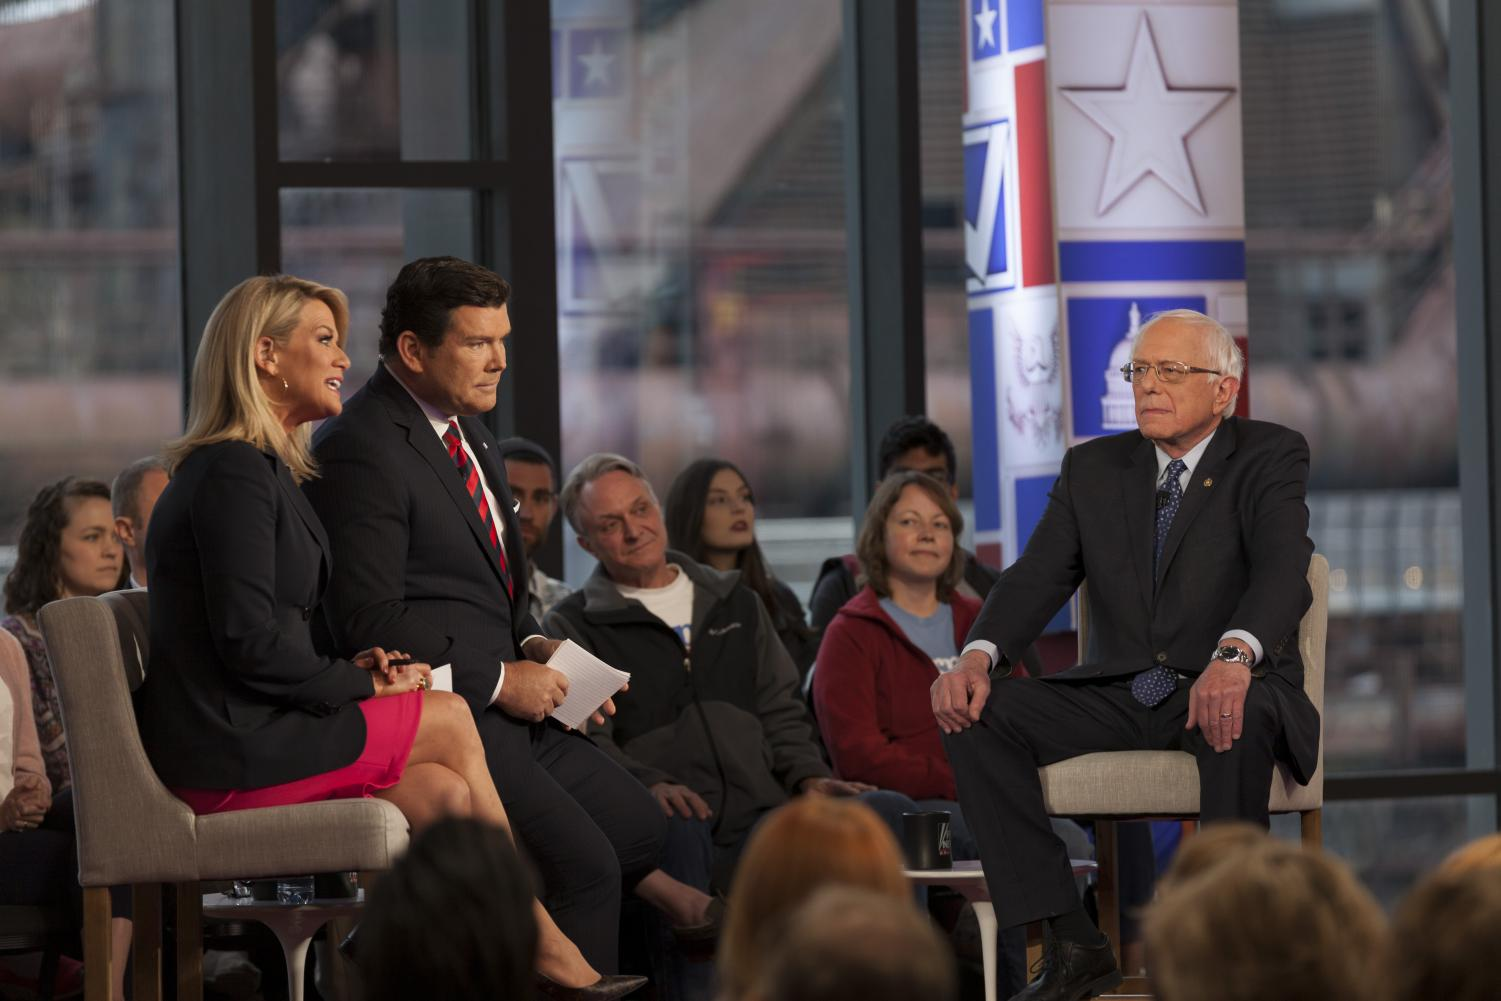 Senator Bernie Sanders sat down to answer questions from the audience and with Fox News co-hosts Bret Baier and Martha MacCallum.